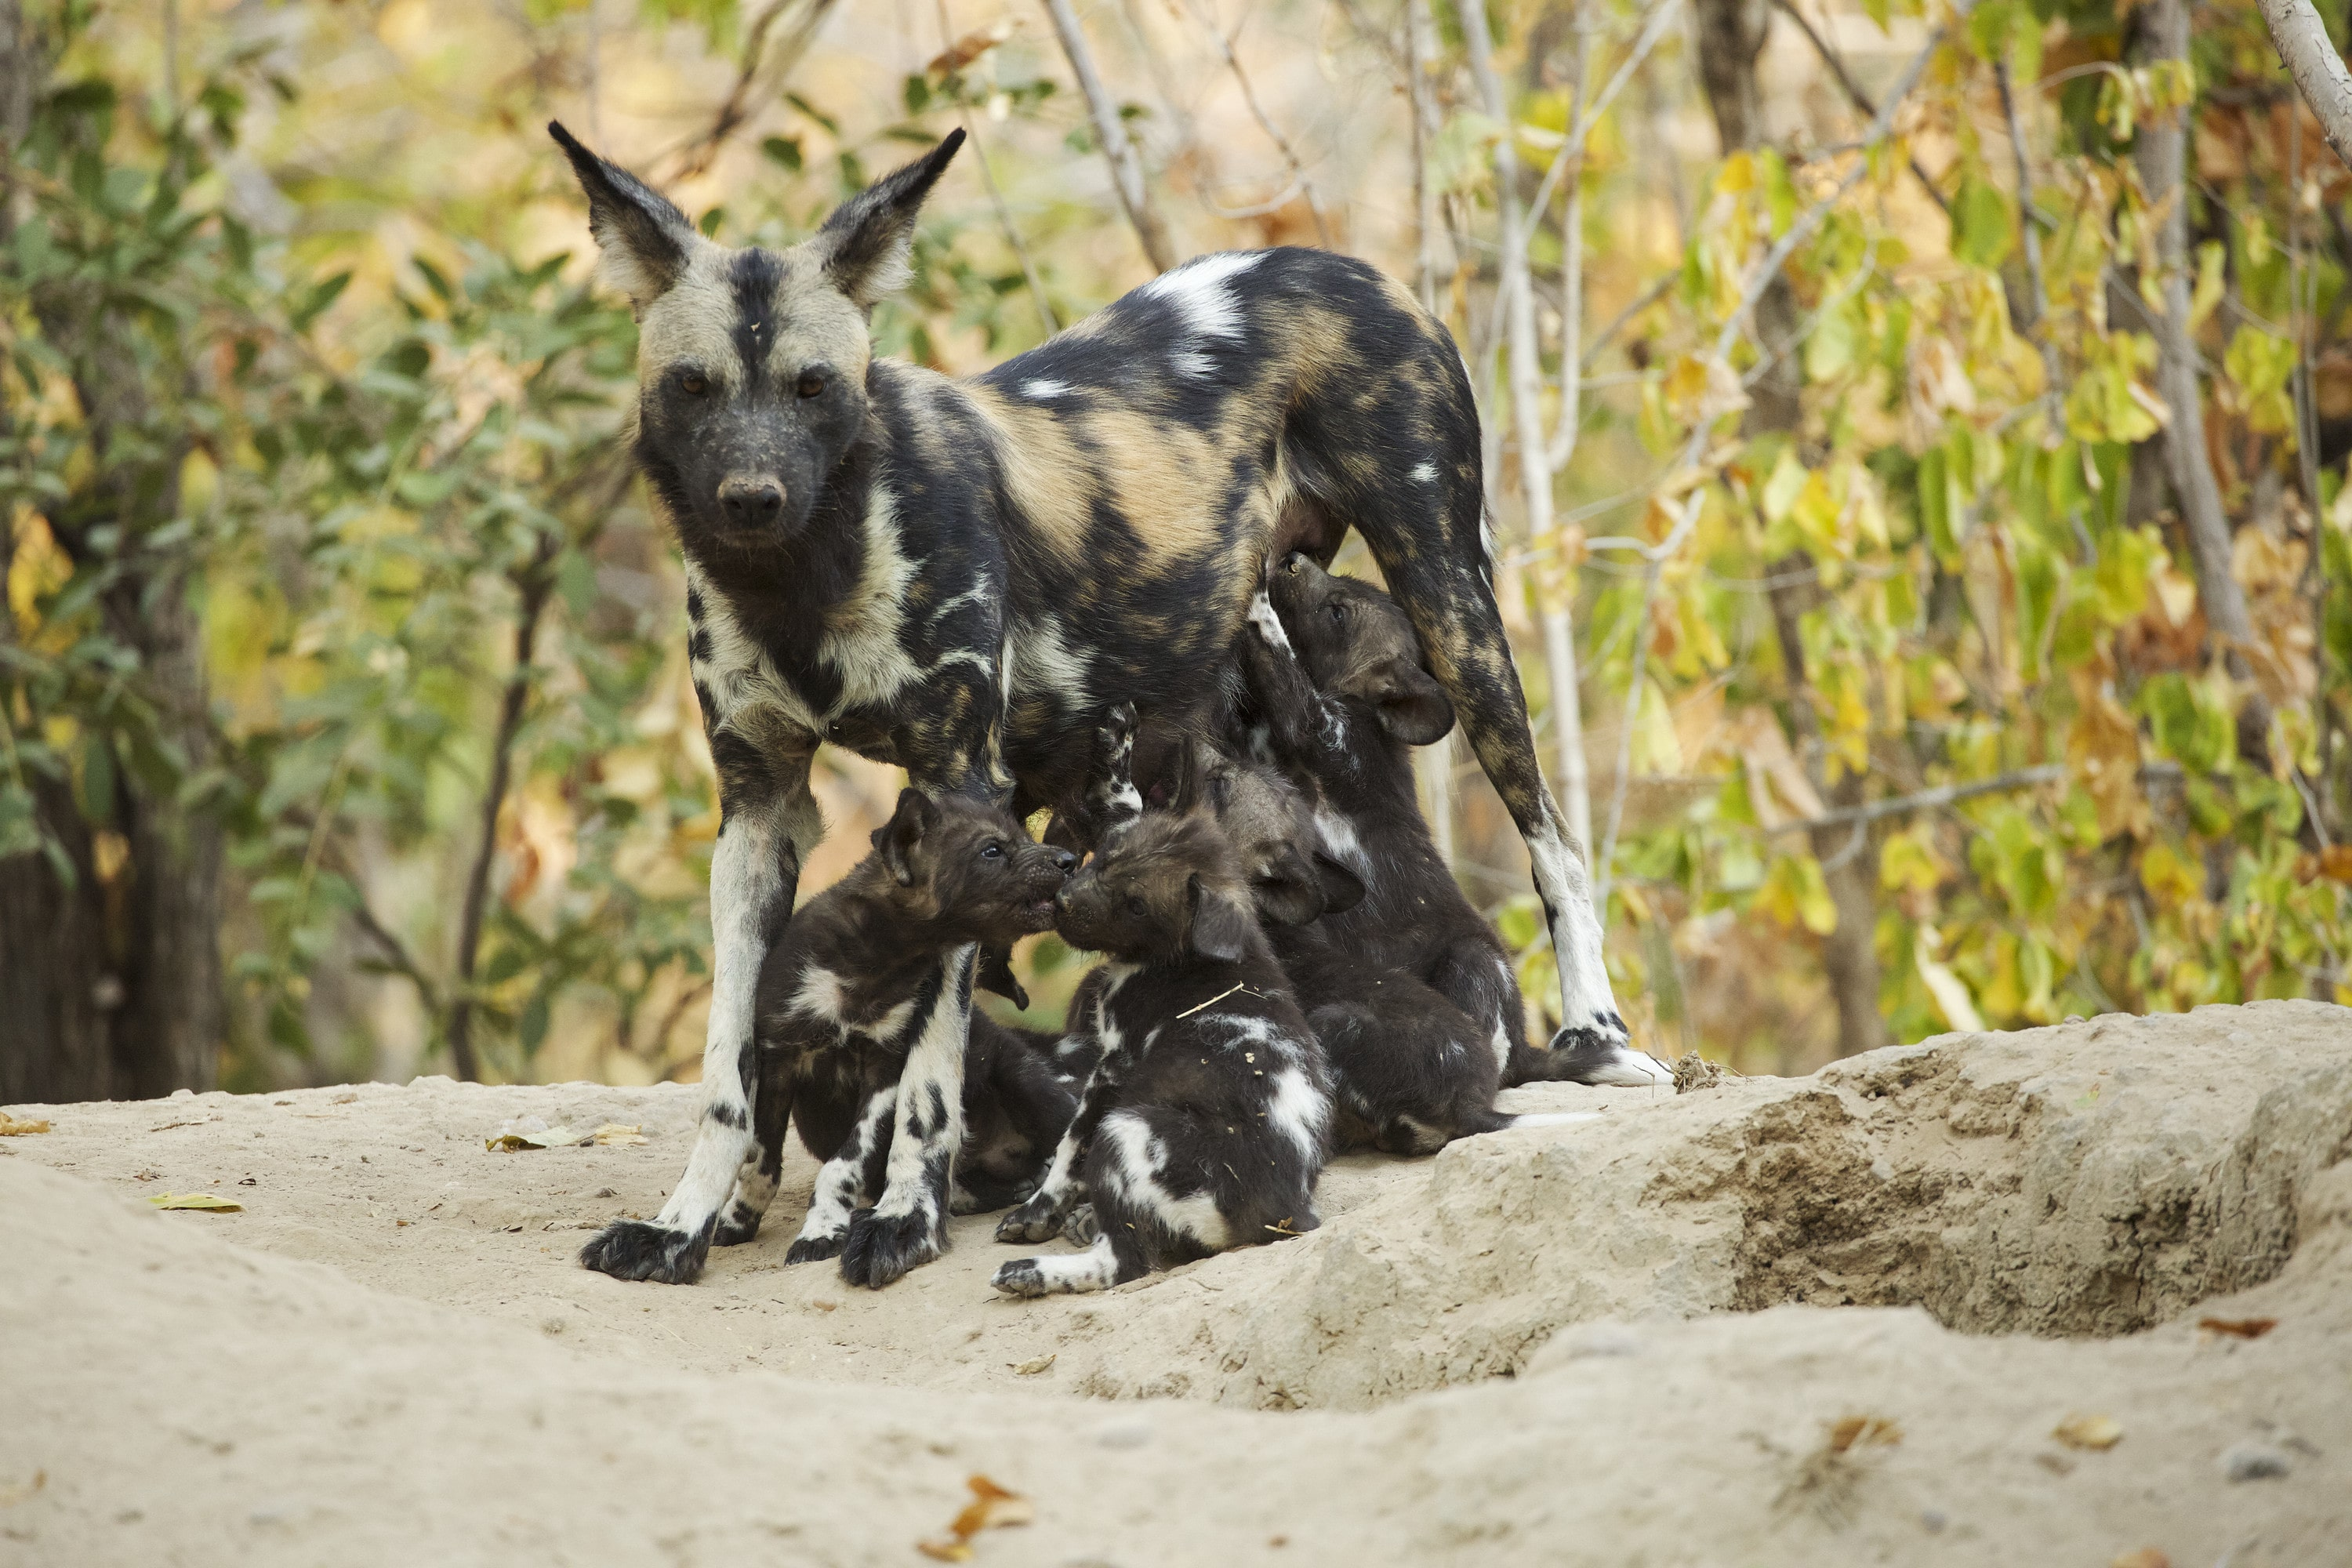 Coco stands with her ears pushed back as her puppies feed. (National Geographic for Disney+/Kim Wolhuter)